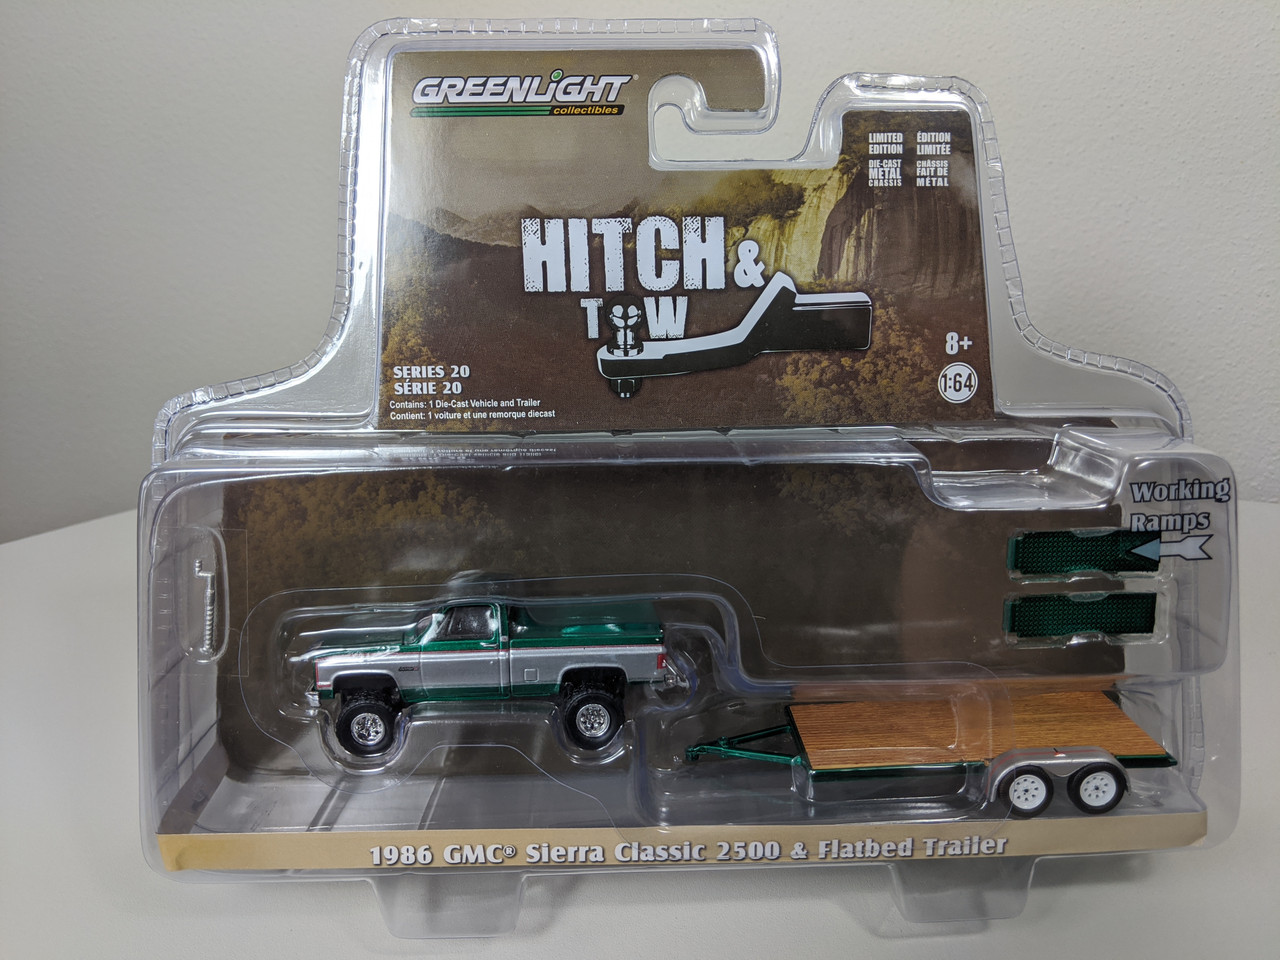 1 64 Hitch Tow Series 20 1986 Gmc Sierra Classic 2500 With Flatbed Trailer Green Machine Town And Country Toys